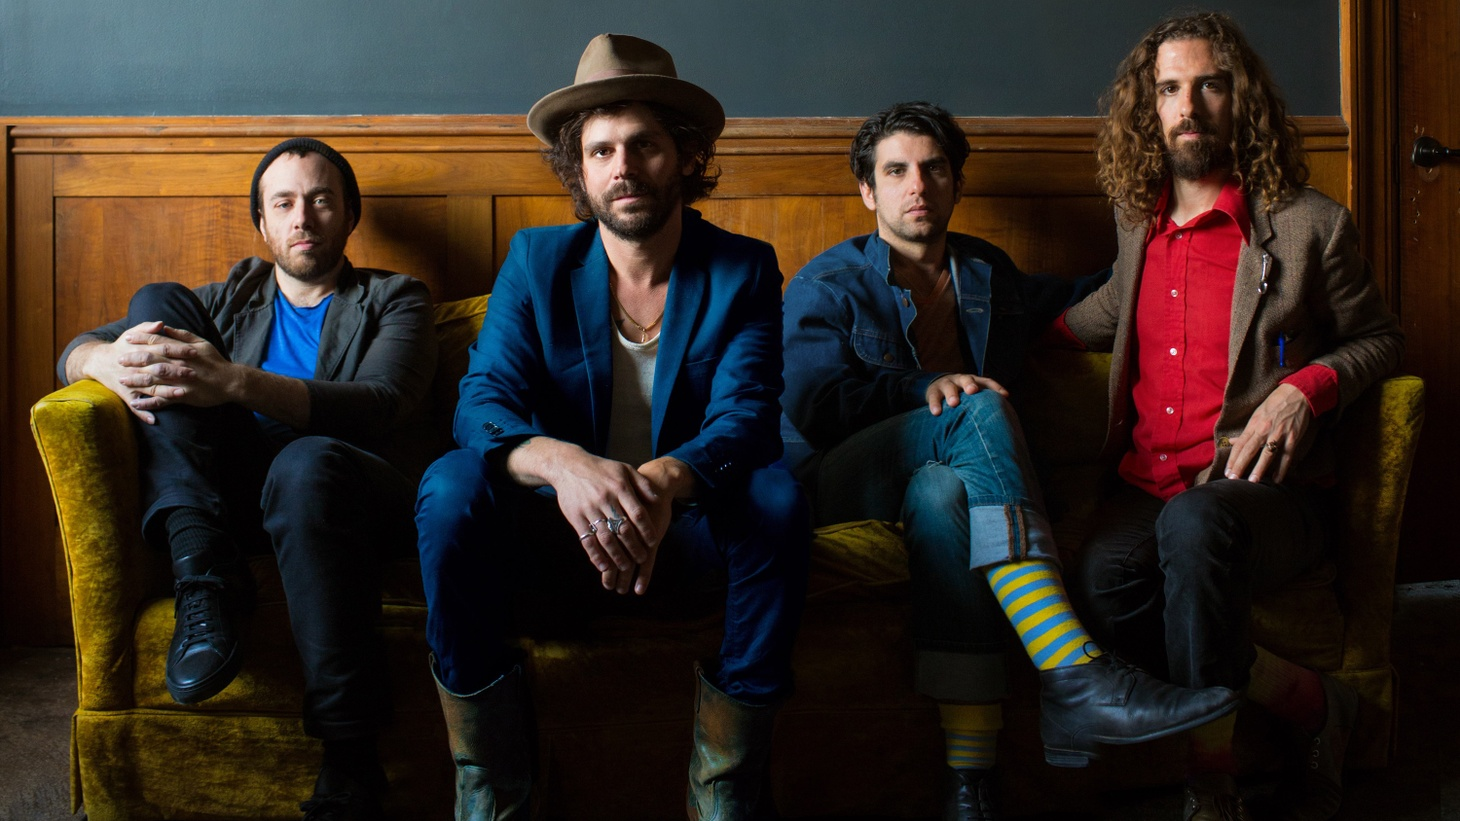 The songs that Langhorne Slim has been releasing over the years have just gotten catchier and catchier.